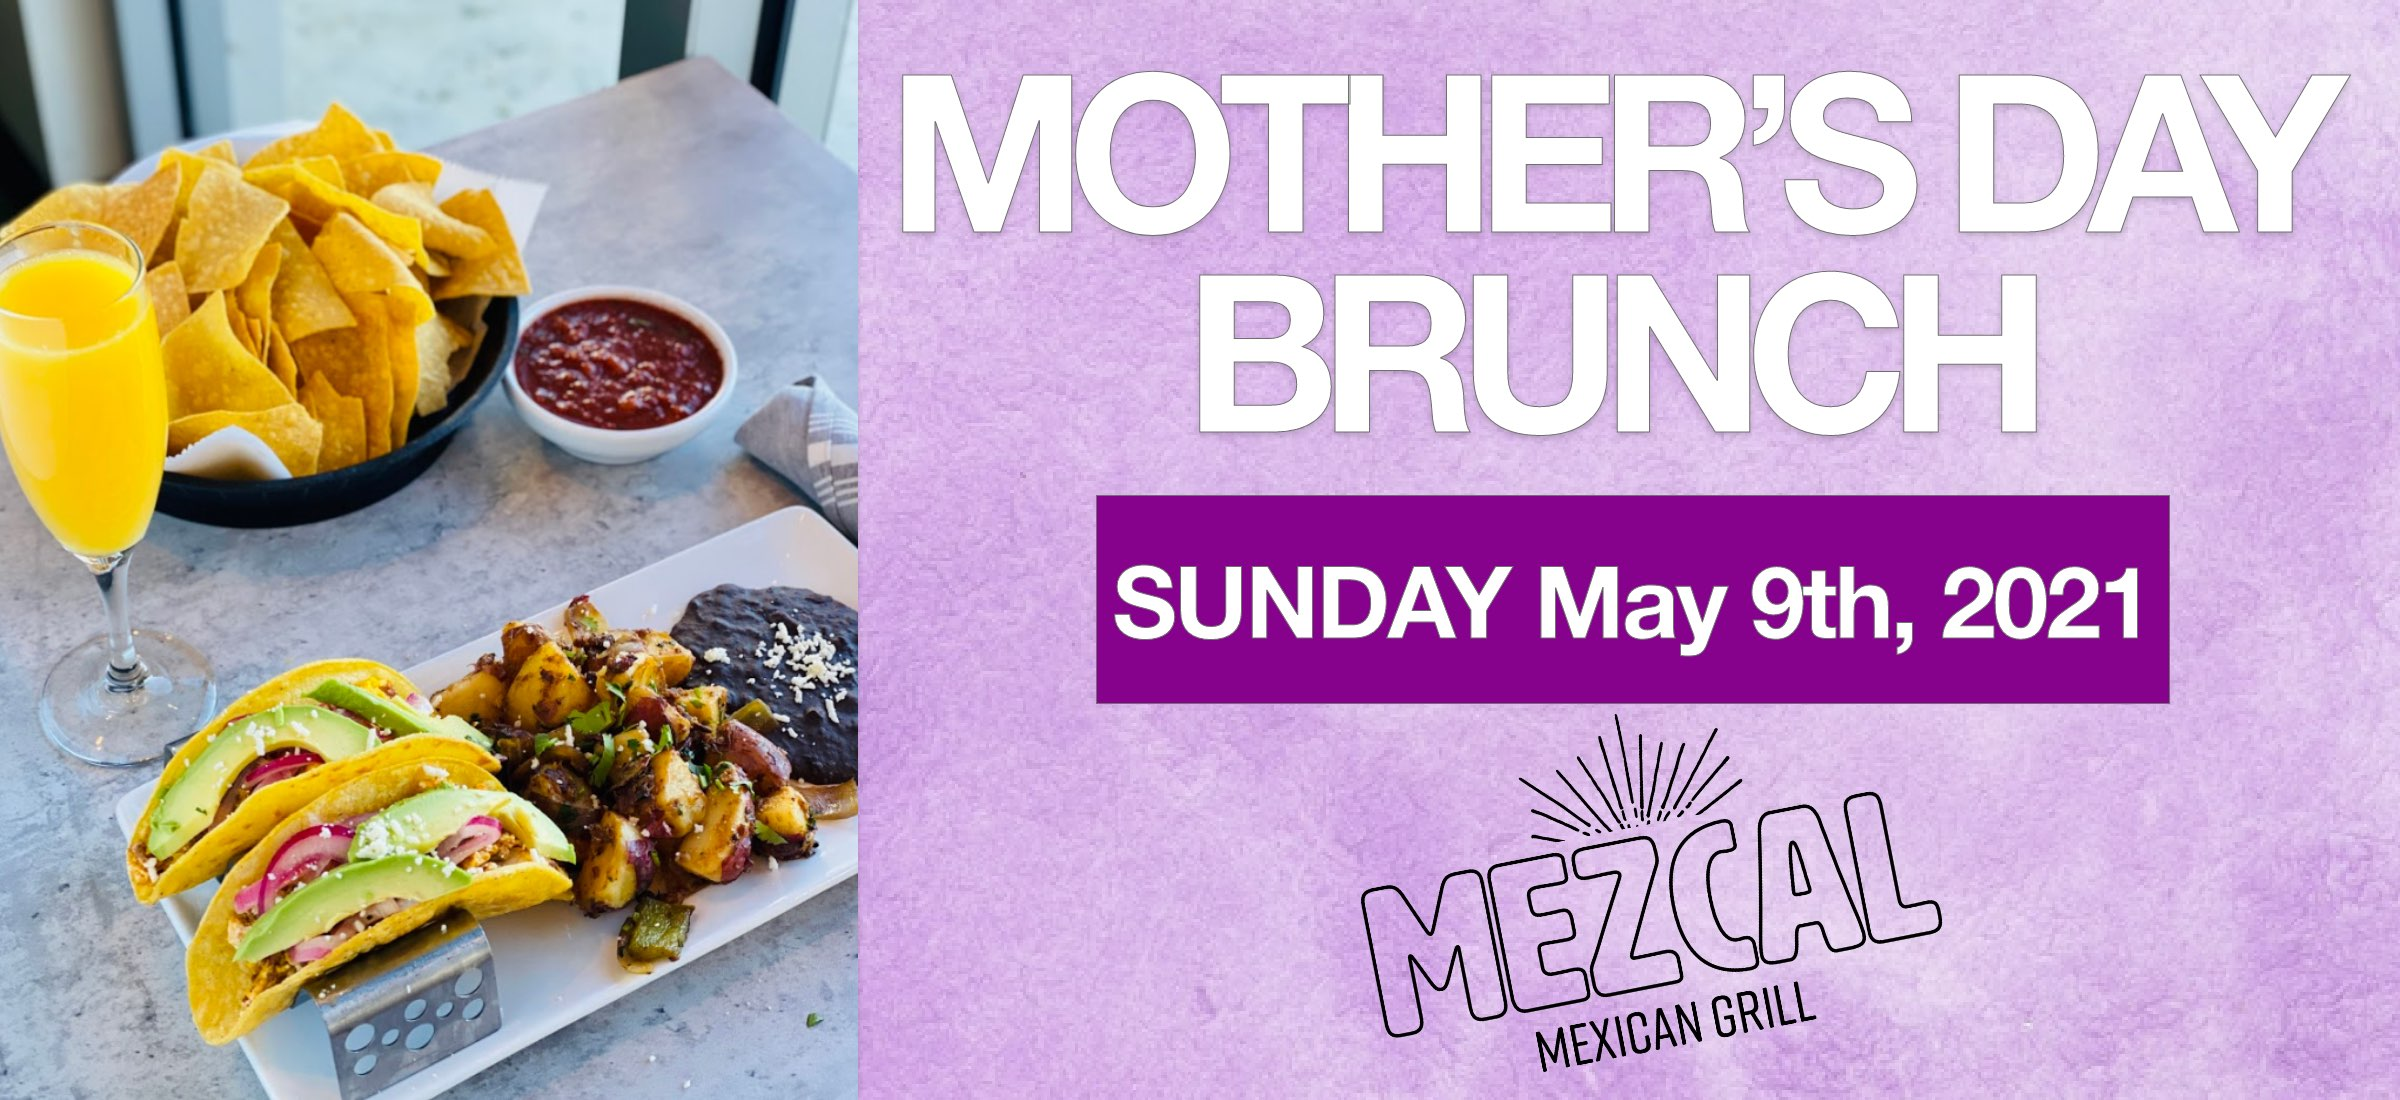 Destin Mother's Day Brunch 2021